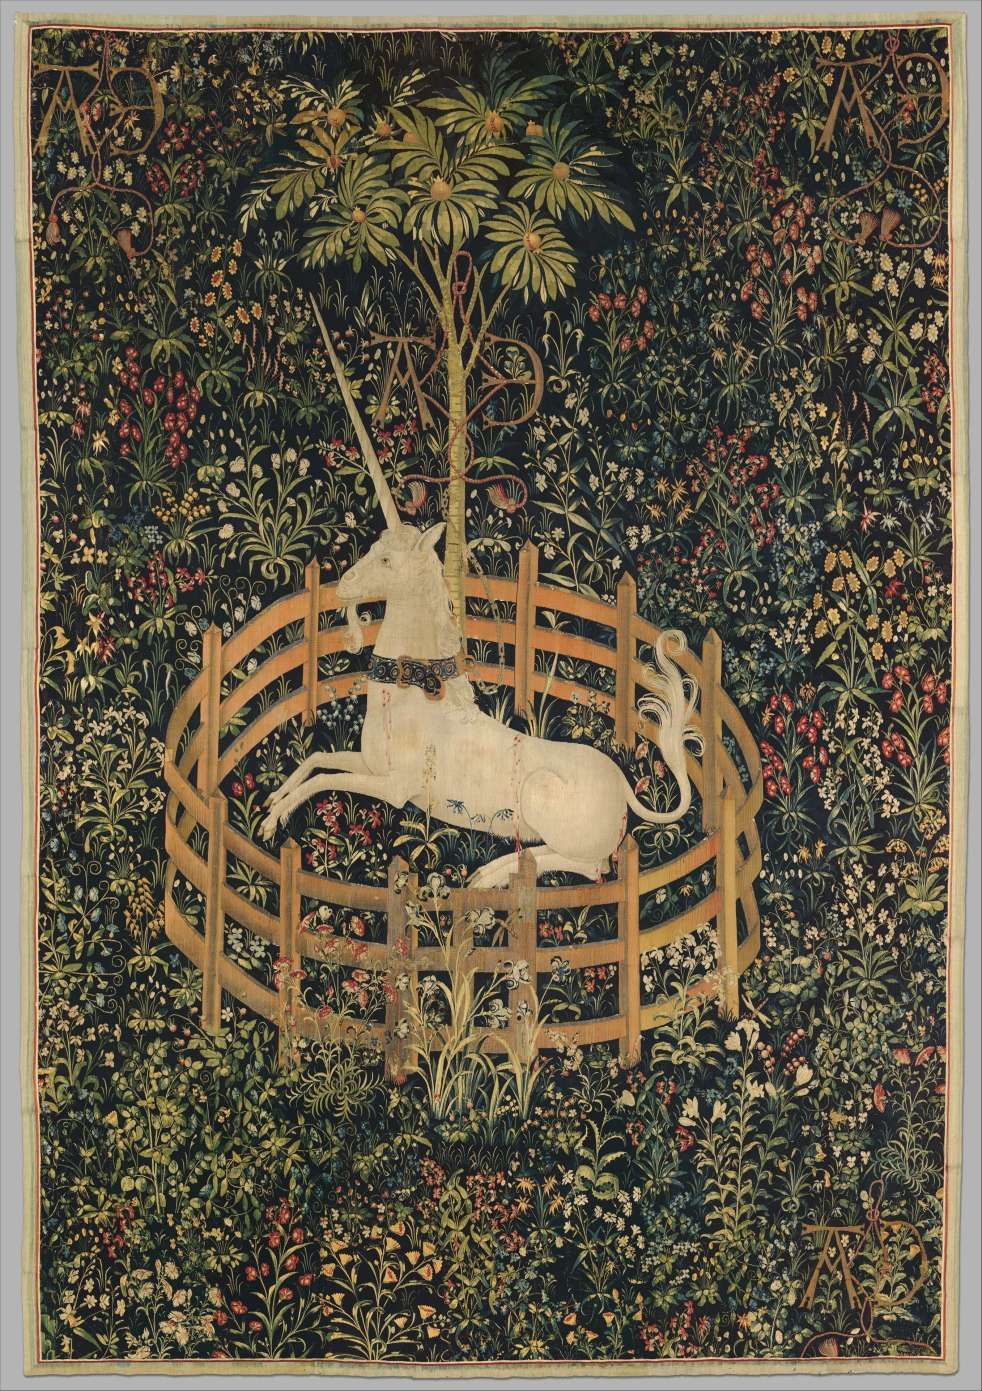 The Unicorn Rests in a Garden (from the Unicorn Tapestries)